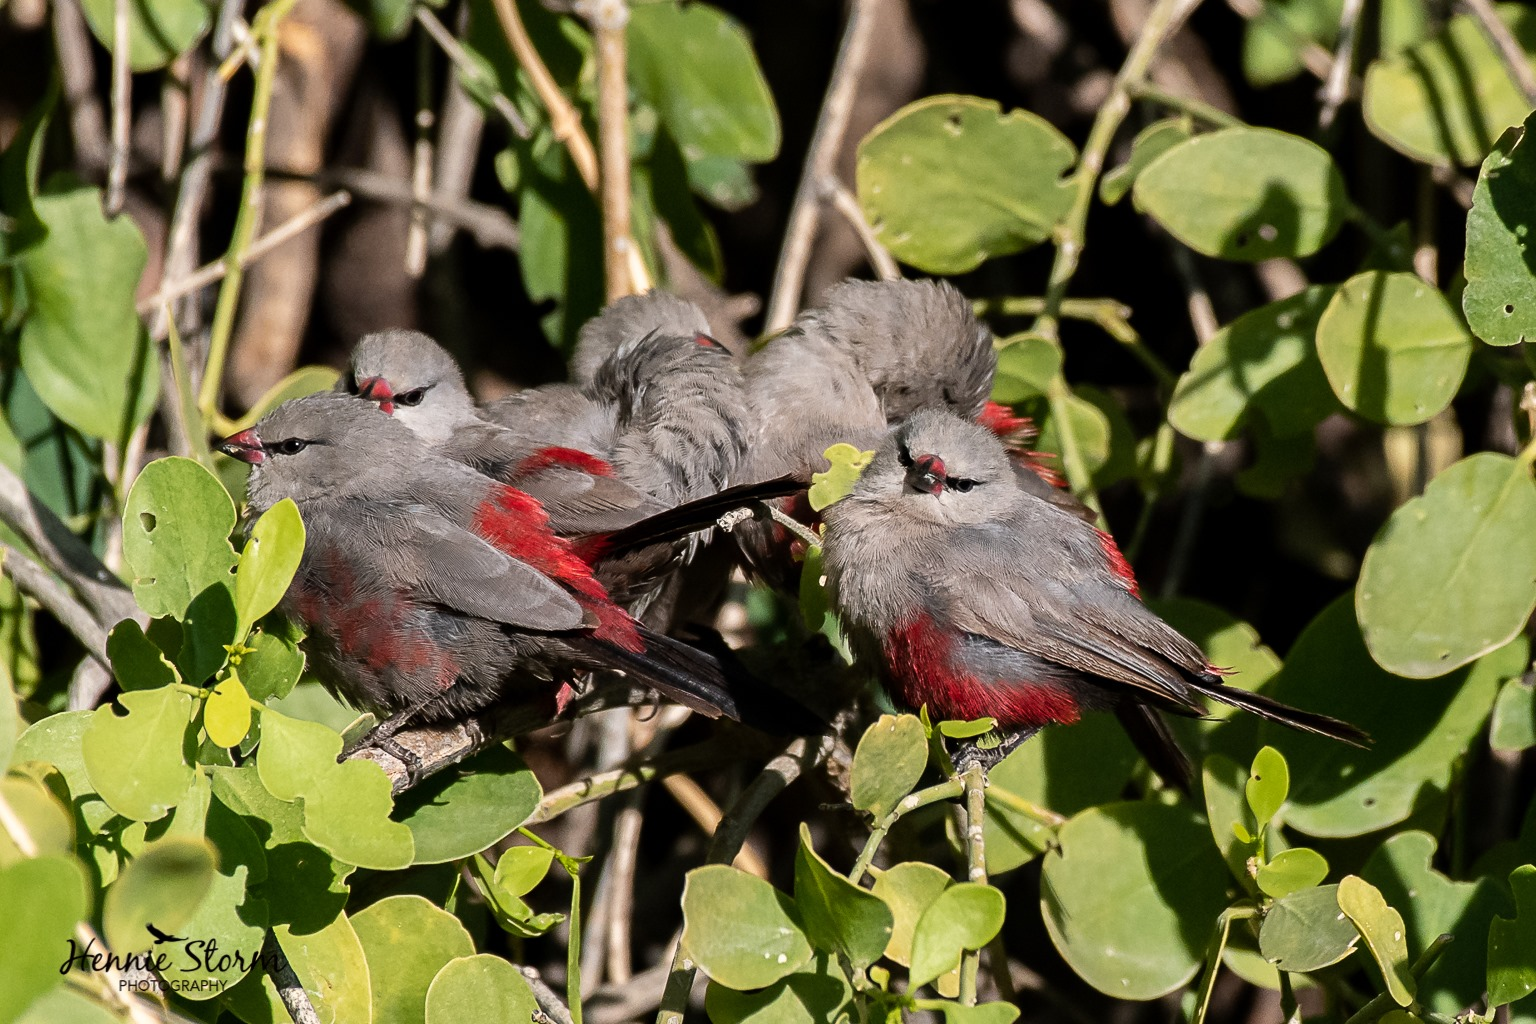 A VISIT TO TE WILD BEAUTY OF THE KUNENE RIVER VALLEY IS YOUR BEST CHANCE TO SEE SPECIES LIKE THE CINDERELLA WAXBILL, A RARE BIRD FOUND MOSTLY IN ANGOLA. IMAGE:  ©HENNIE STORM